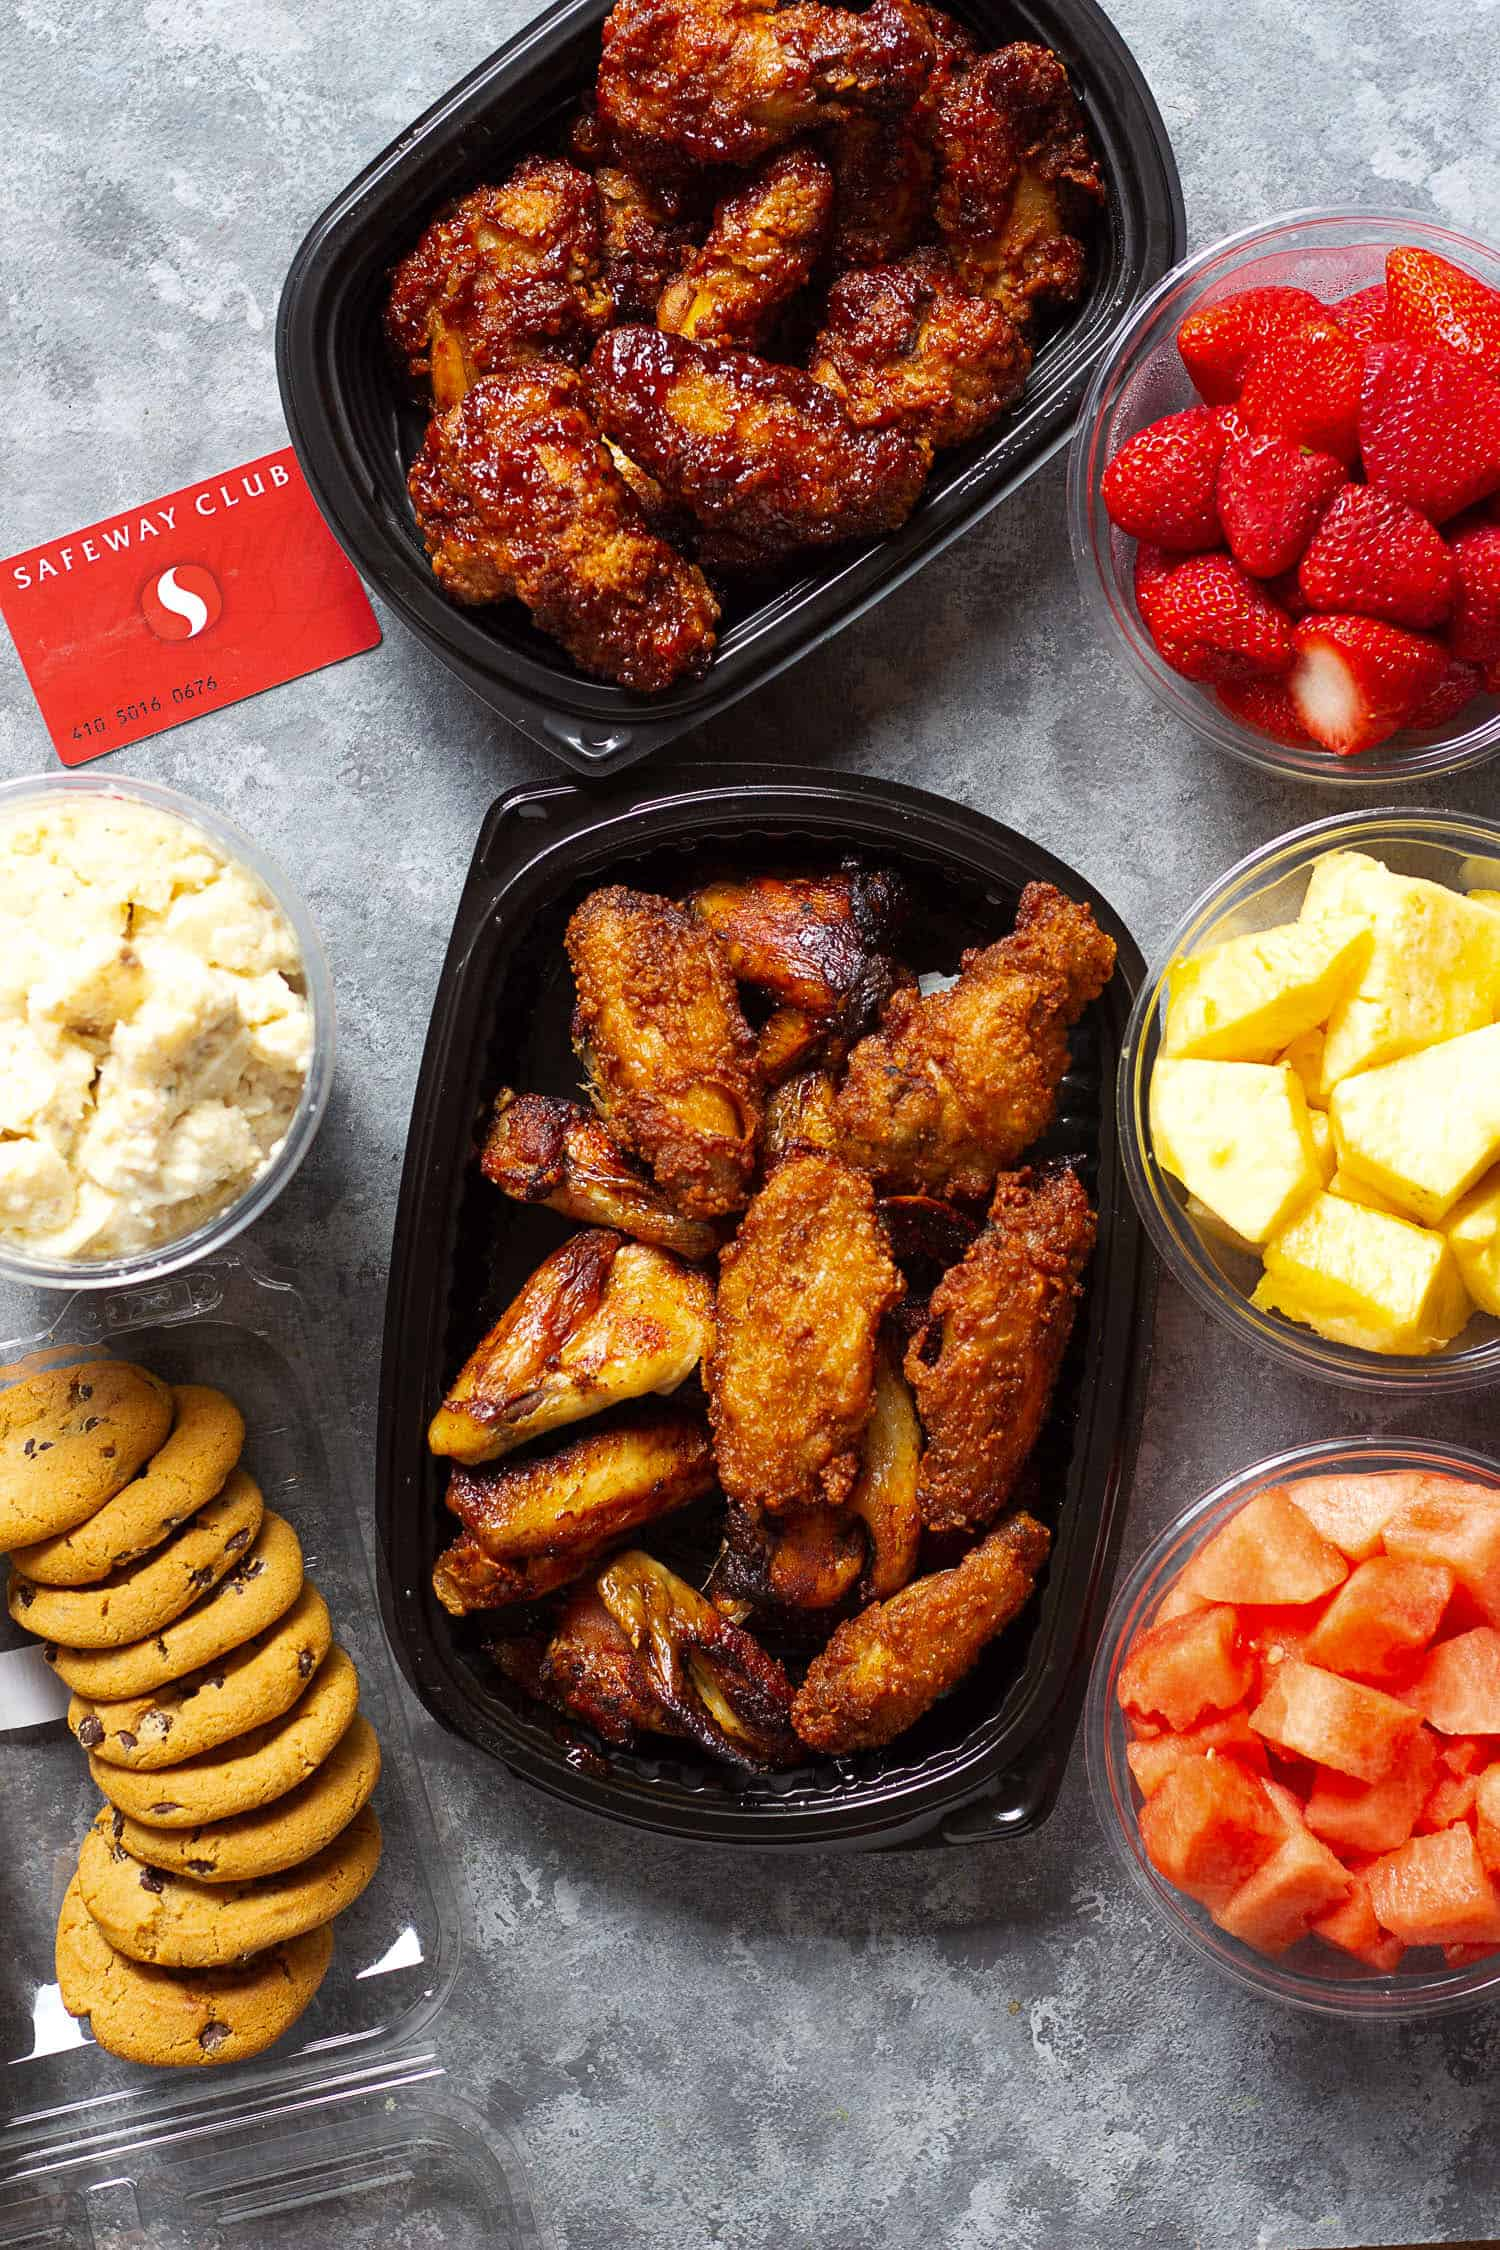 I got the wings, fruit, chocolate chips and potato salad from my local Safeway.